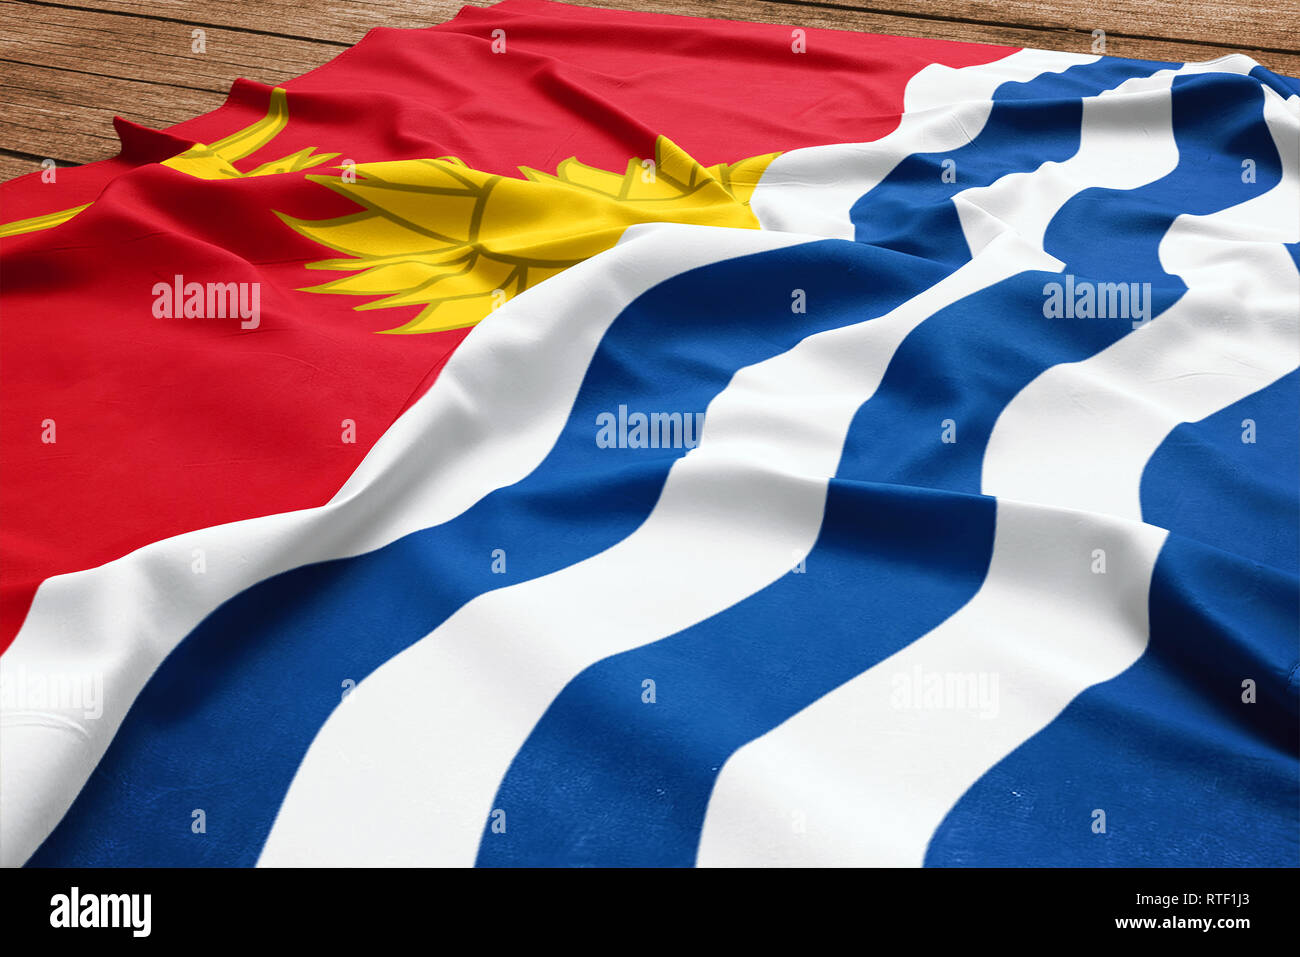 Flag of Kiribati on a wooden desk background. Silk flag top view. - Stock Image